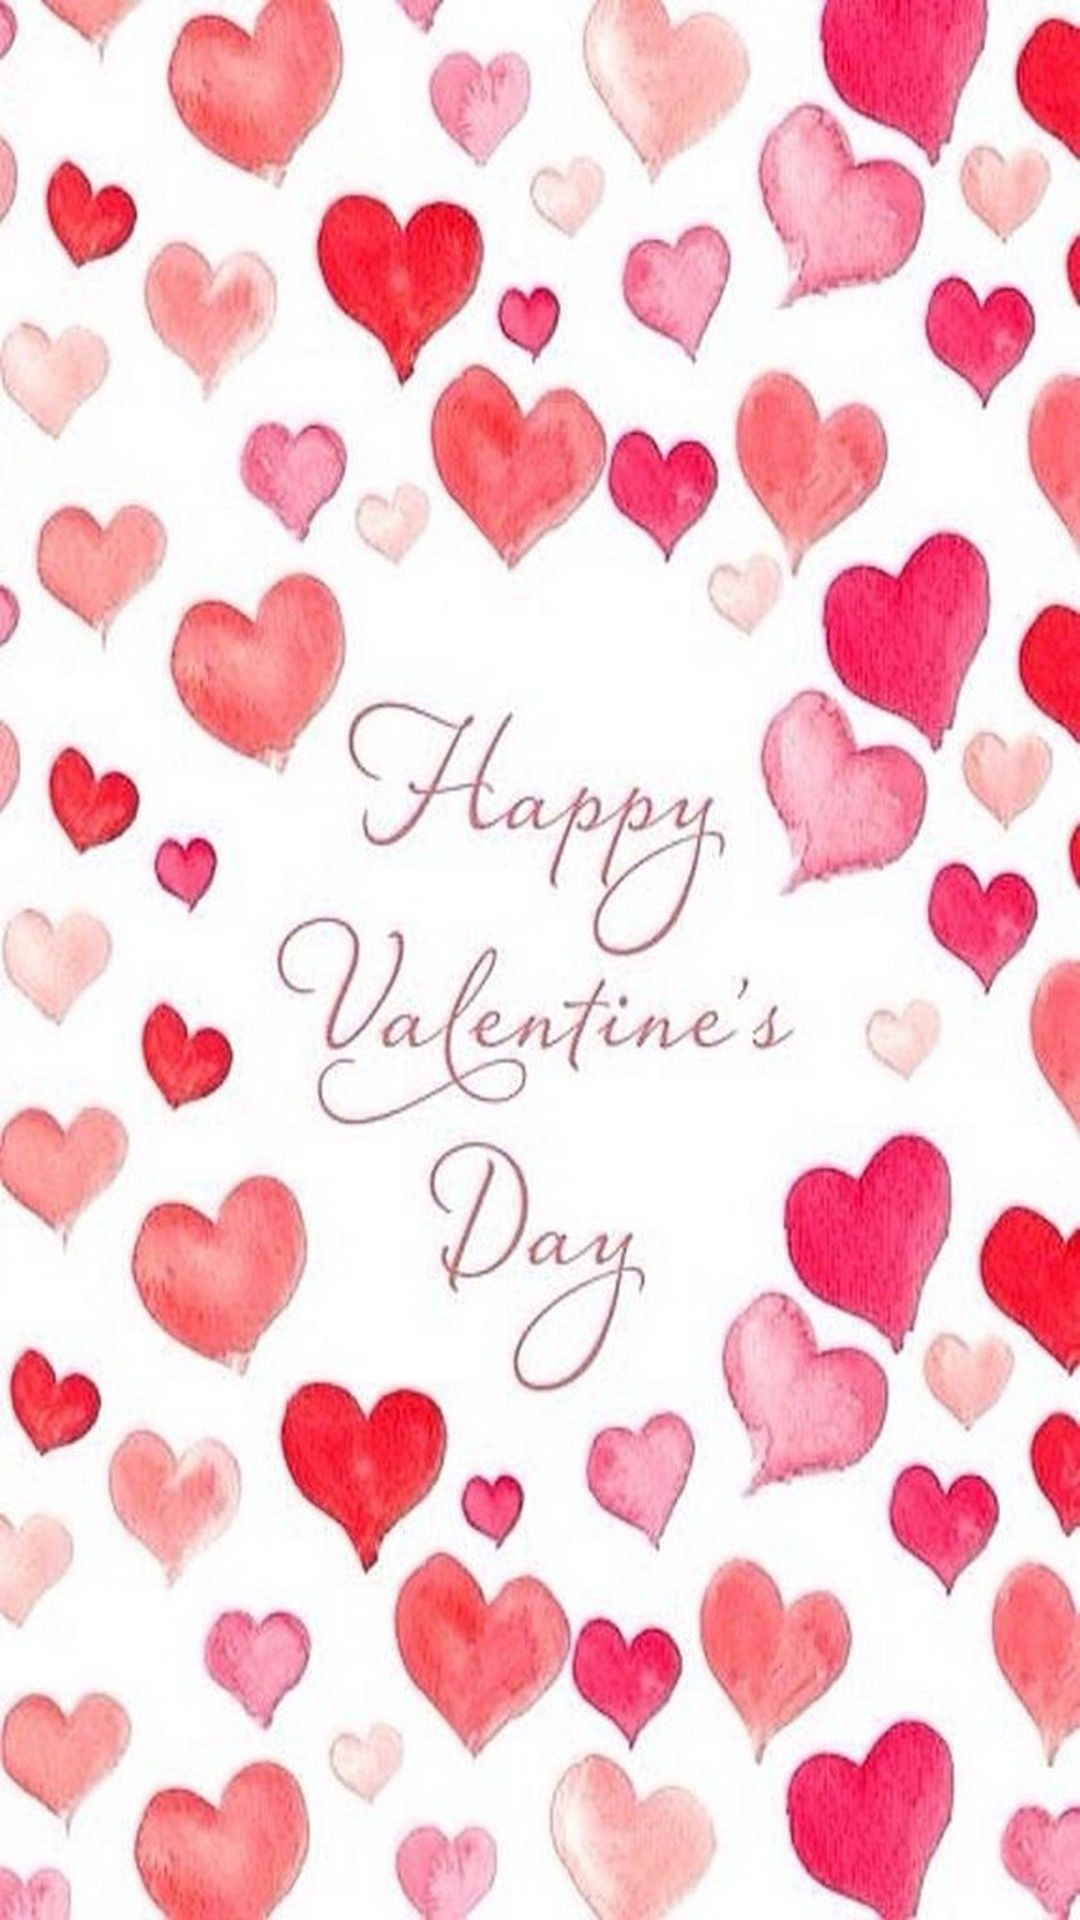 happy valentine iphone wallpaper love | best hd wallpapers